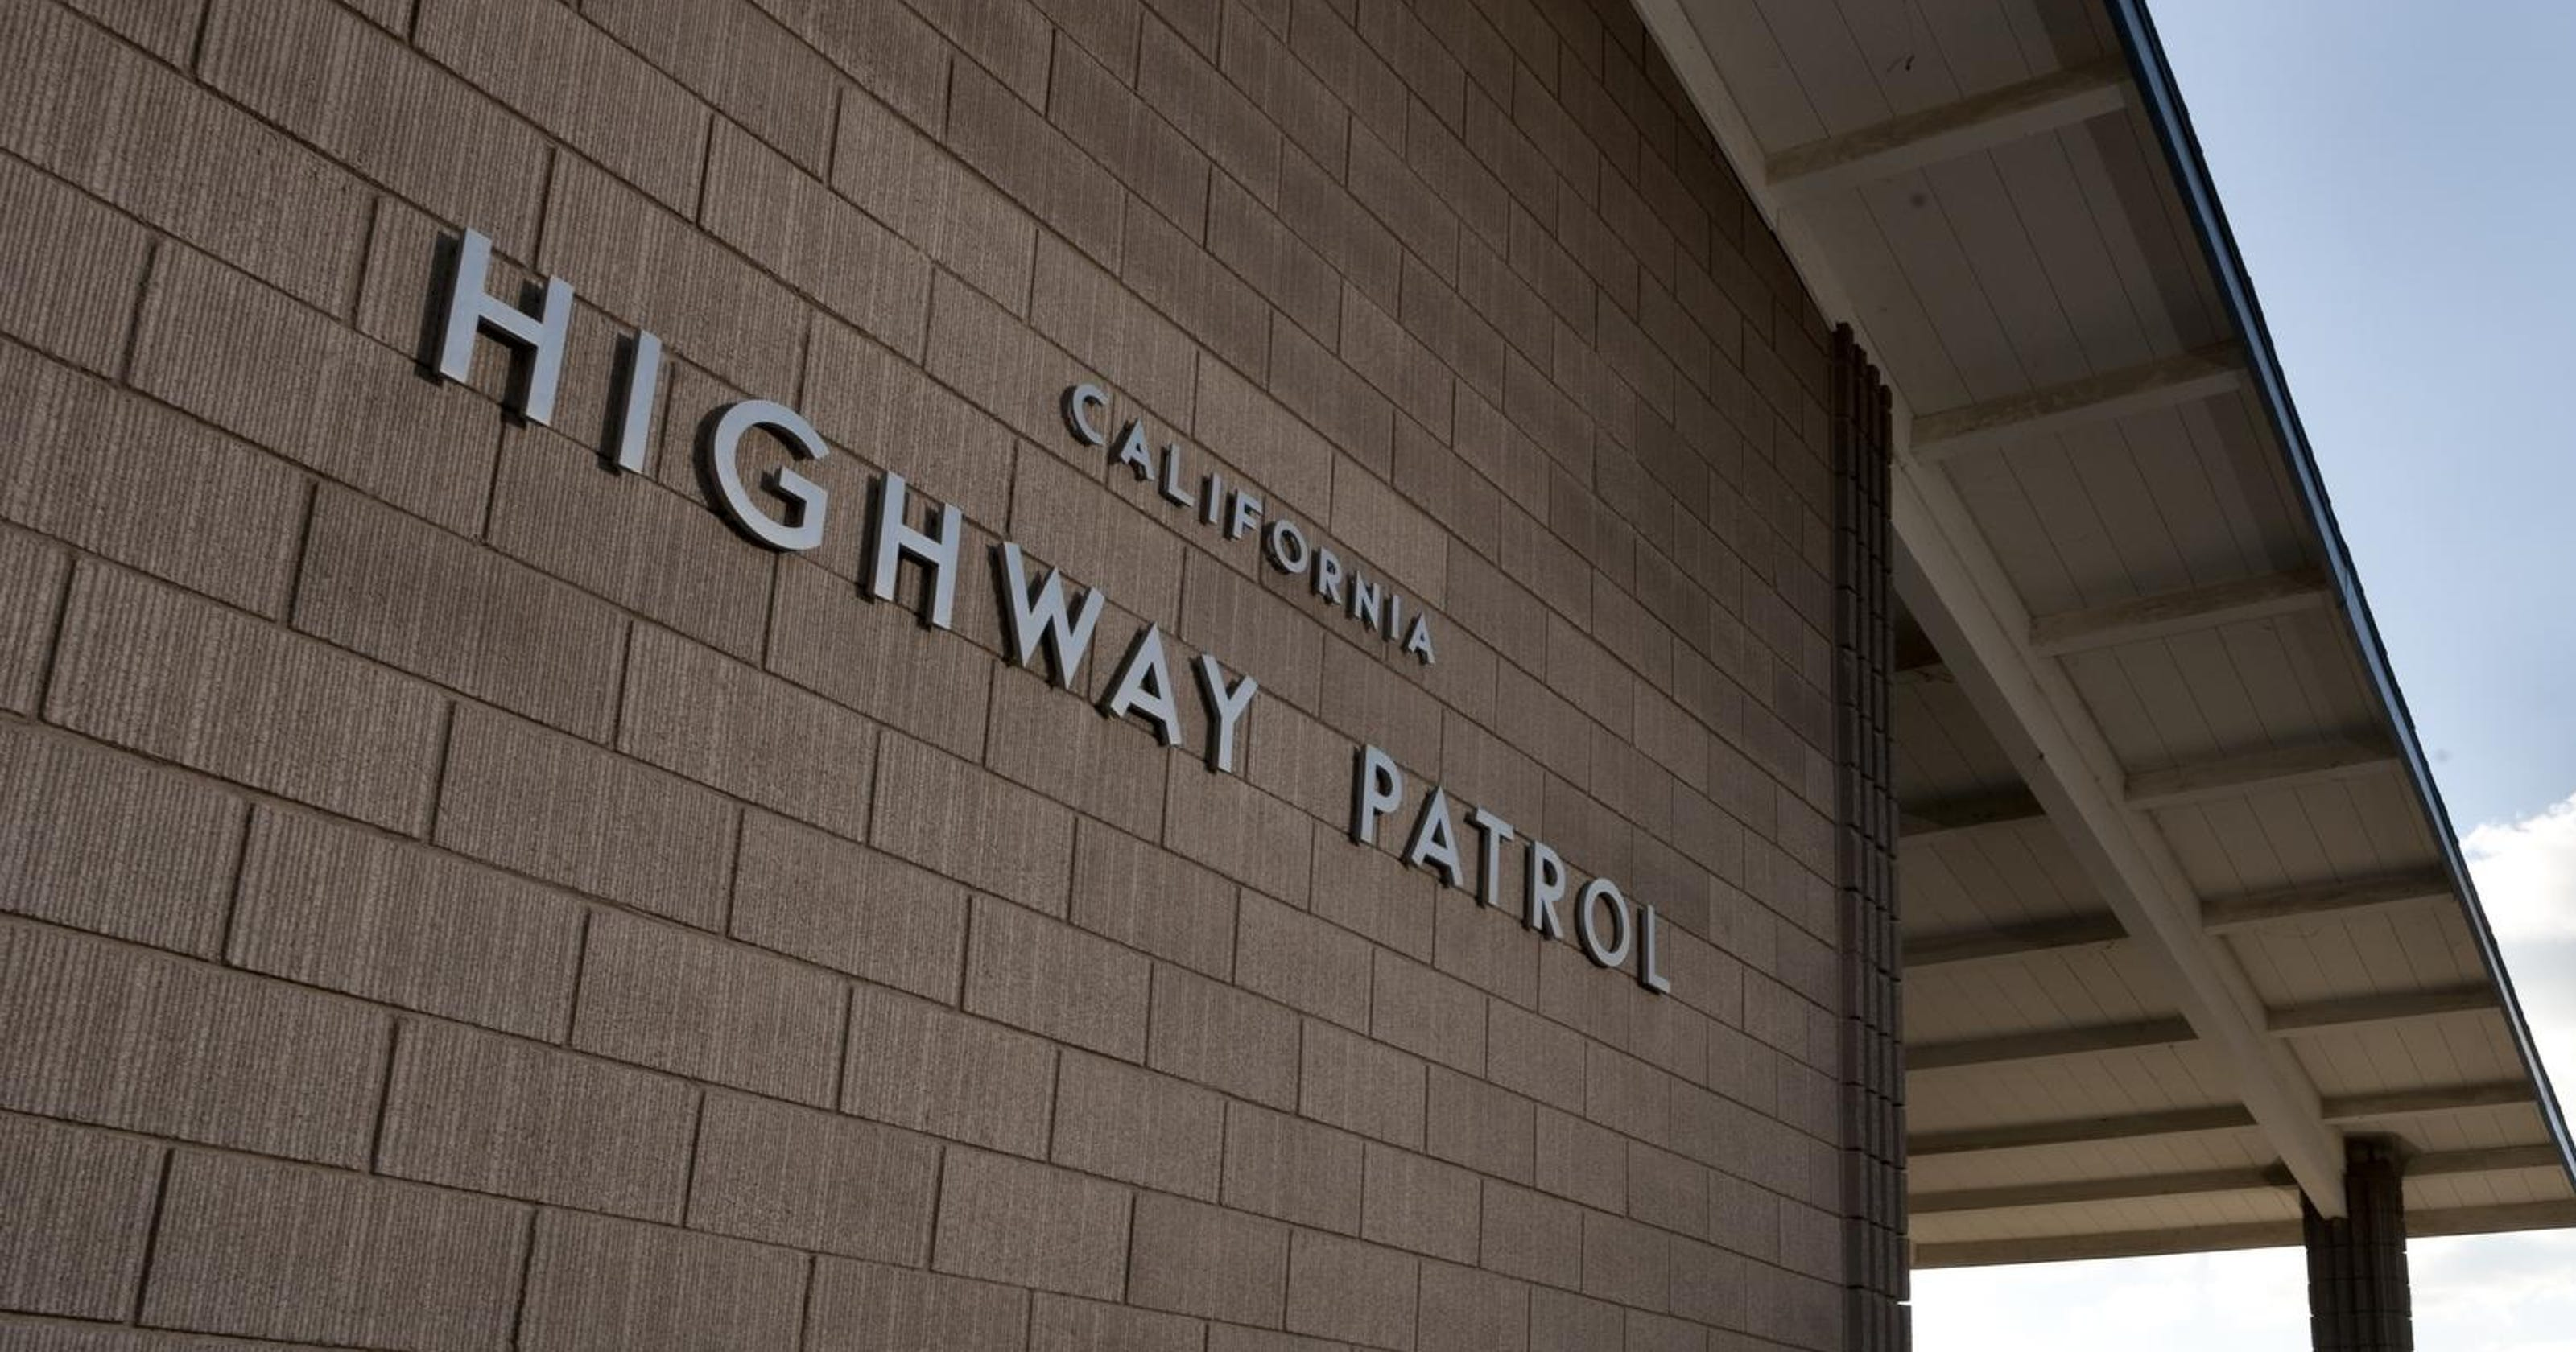 27-year-old Tulare County man killed in single-vehicle collision